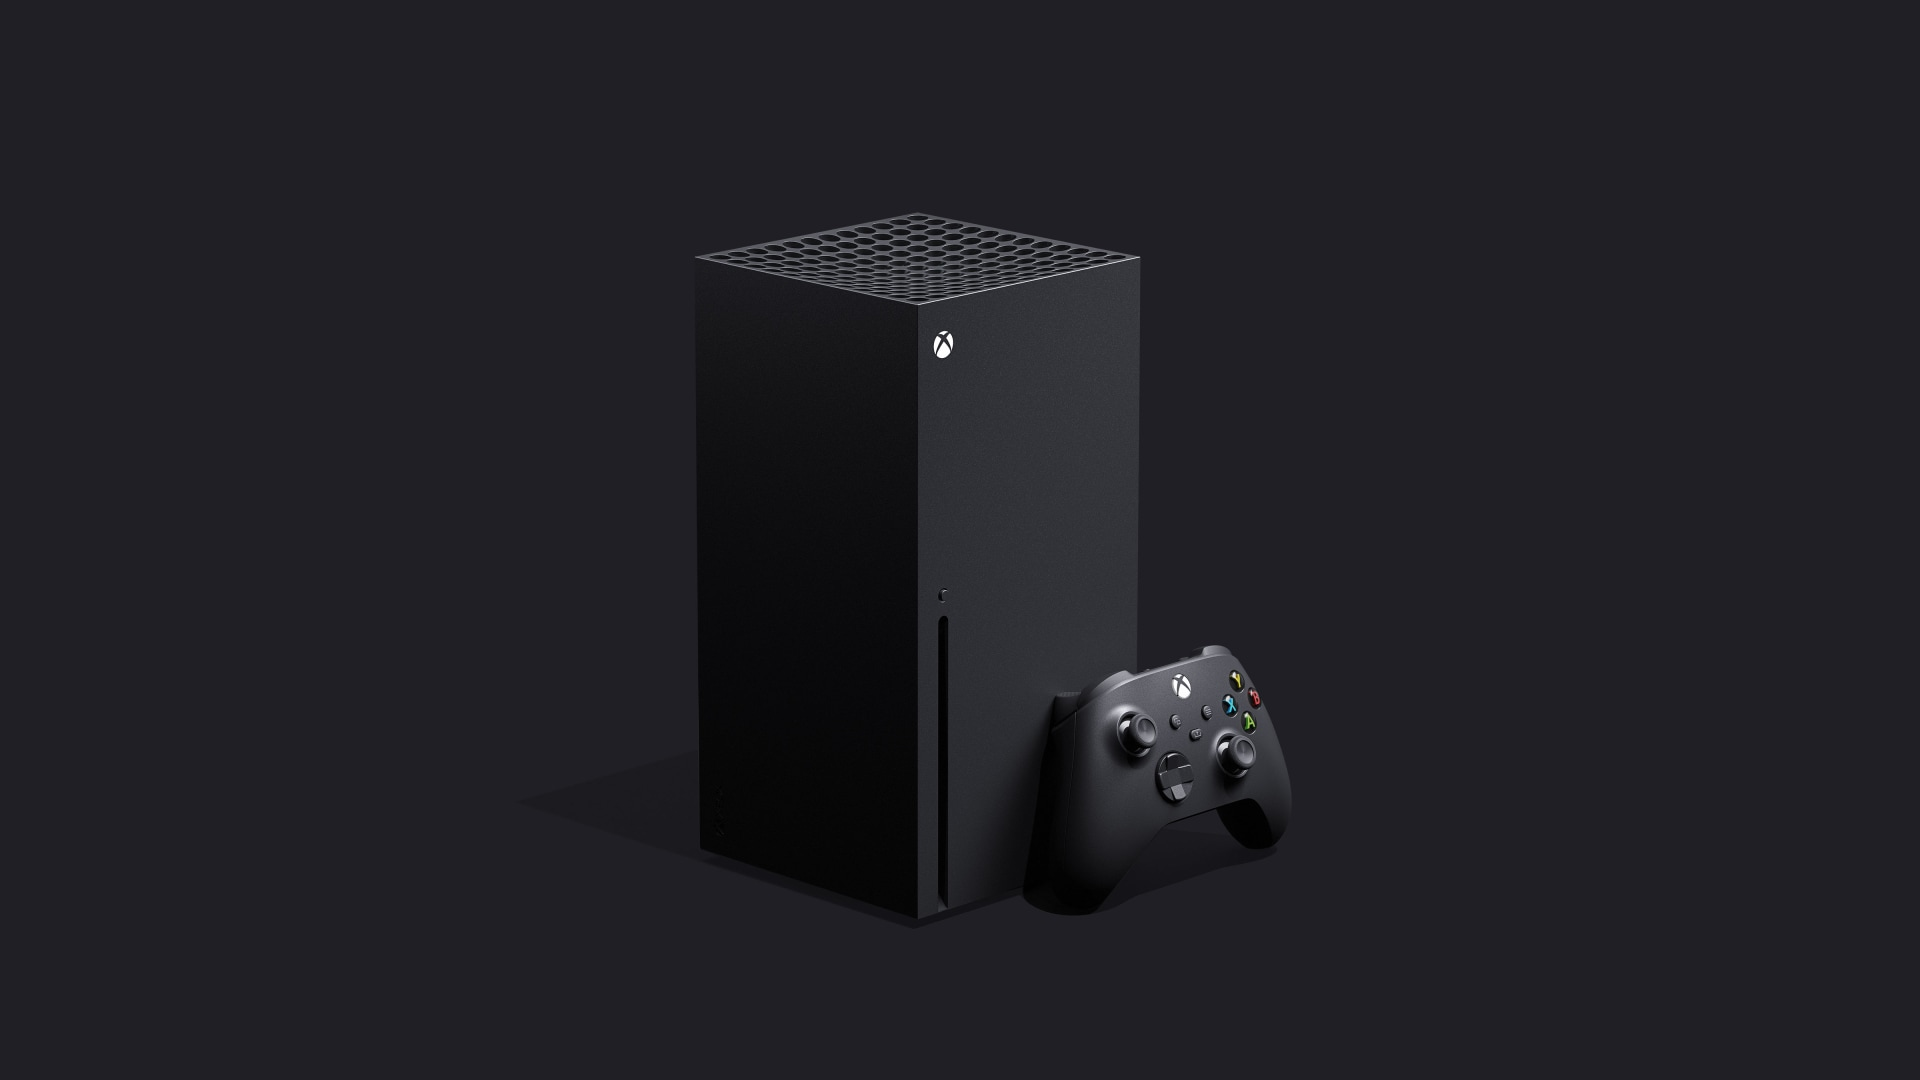 Xbox Series X Console: 12 Teraflop Power, Four-Generation Compatibility, and More